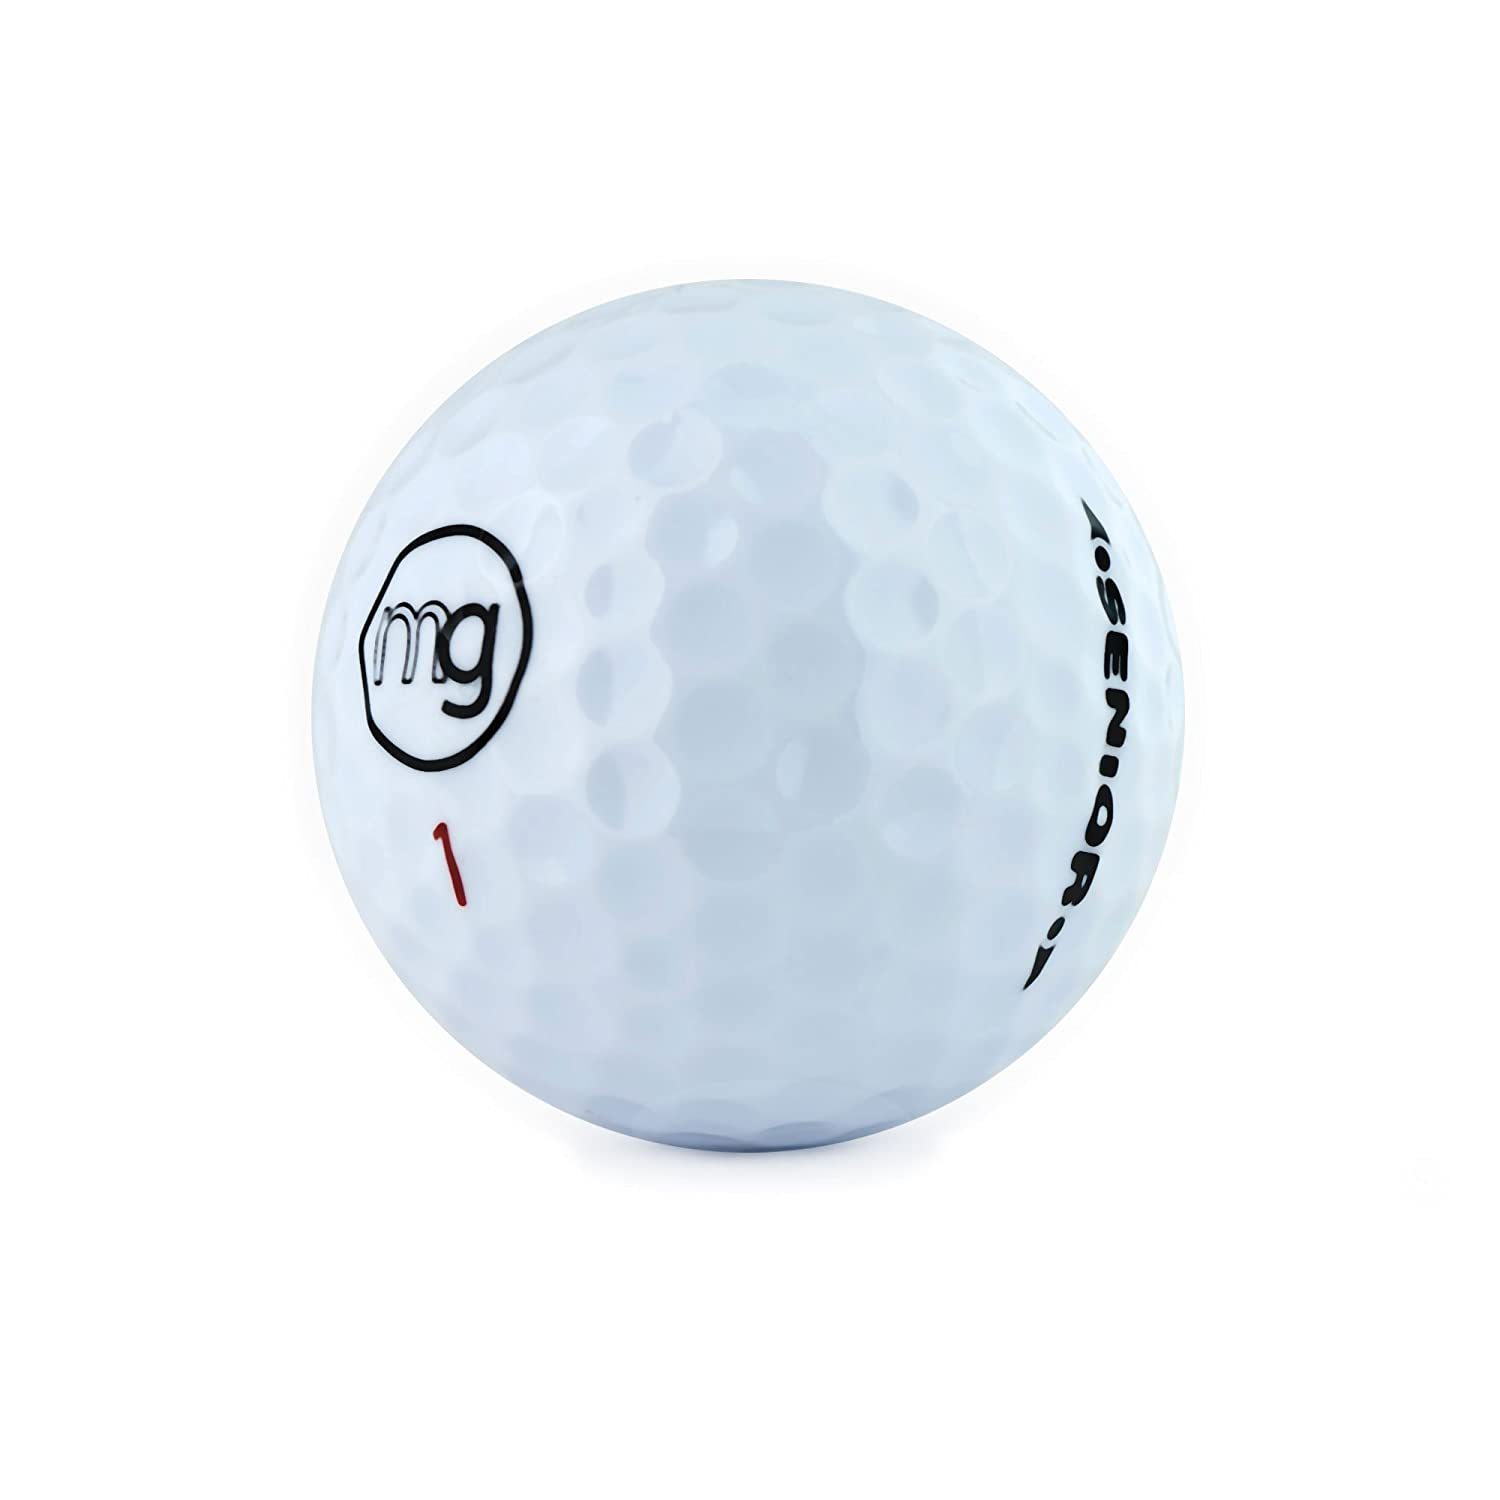 Amazon.com: MG pelotas de golf Senior, velocidad, distancia ...